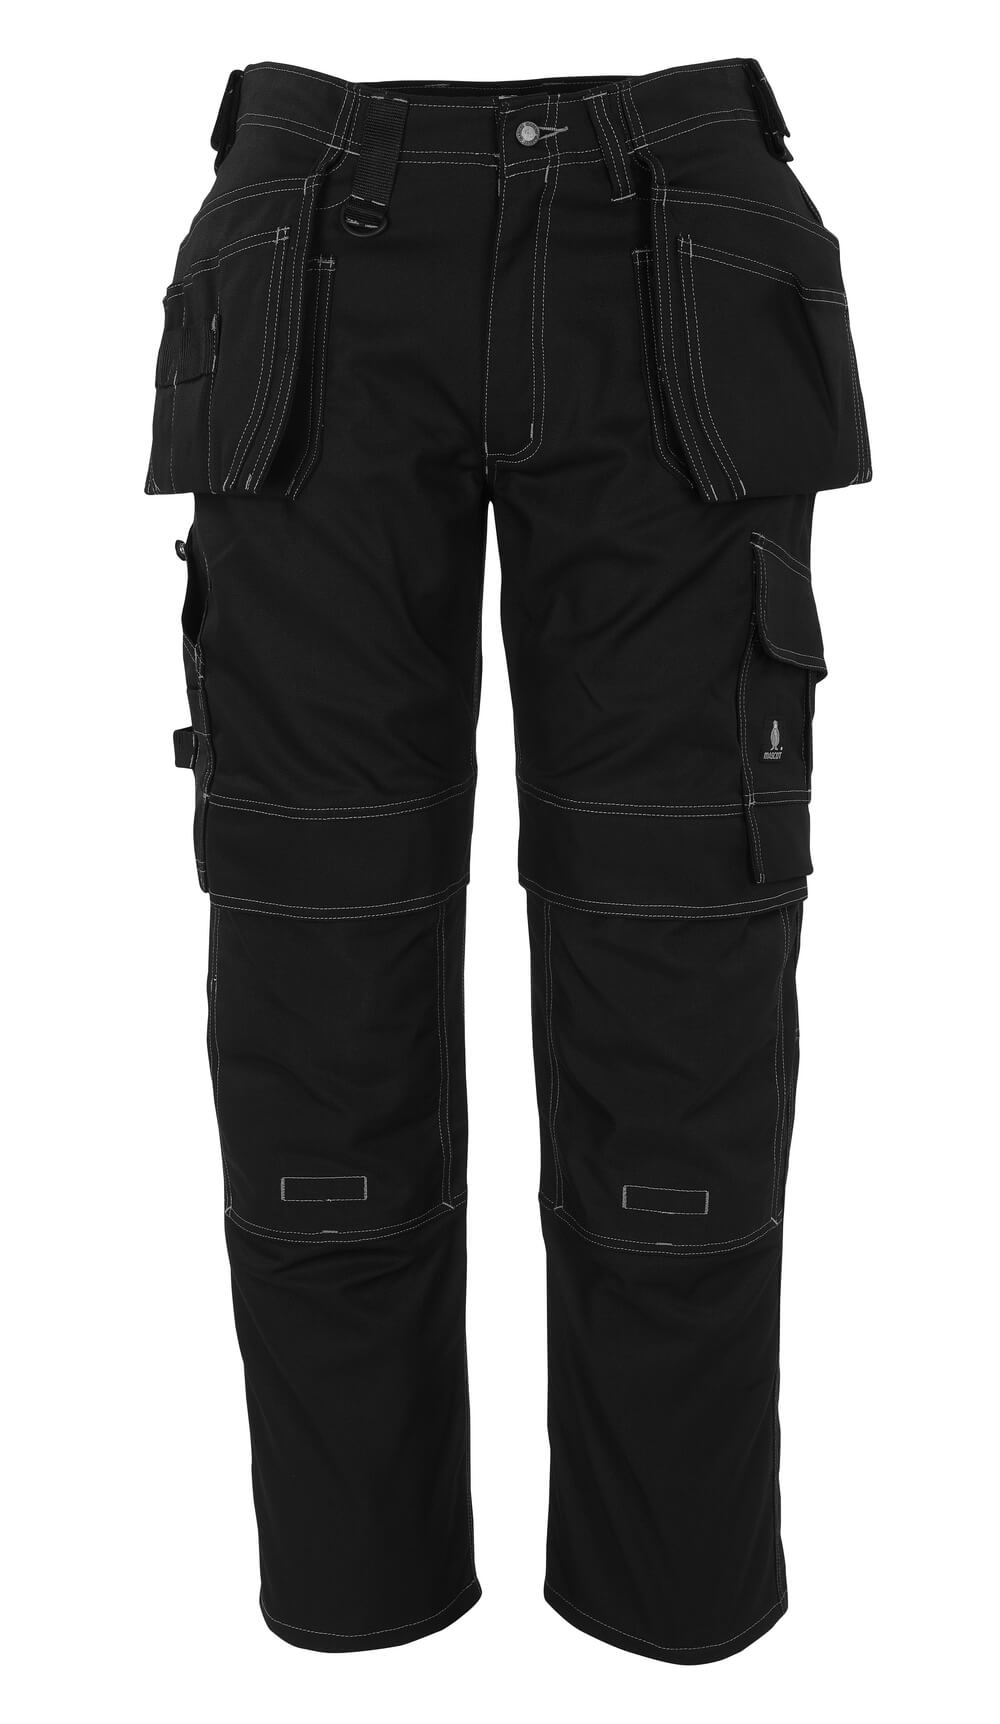 08131-010-09 Trousers with kneepad pockets and holster pockets - black